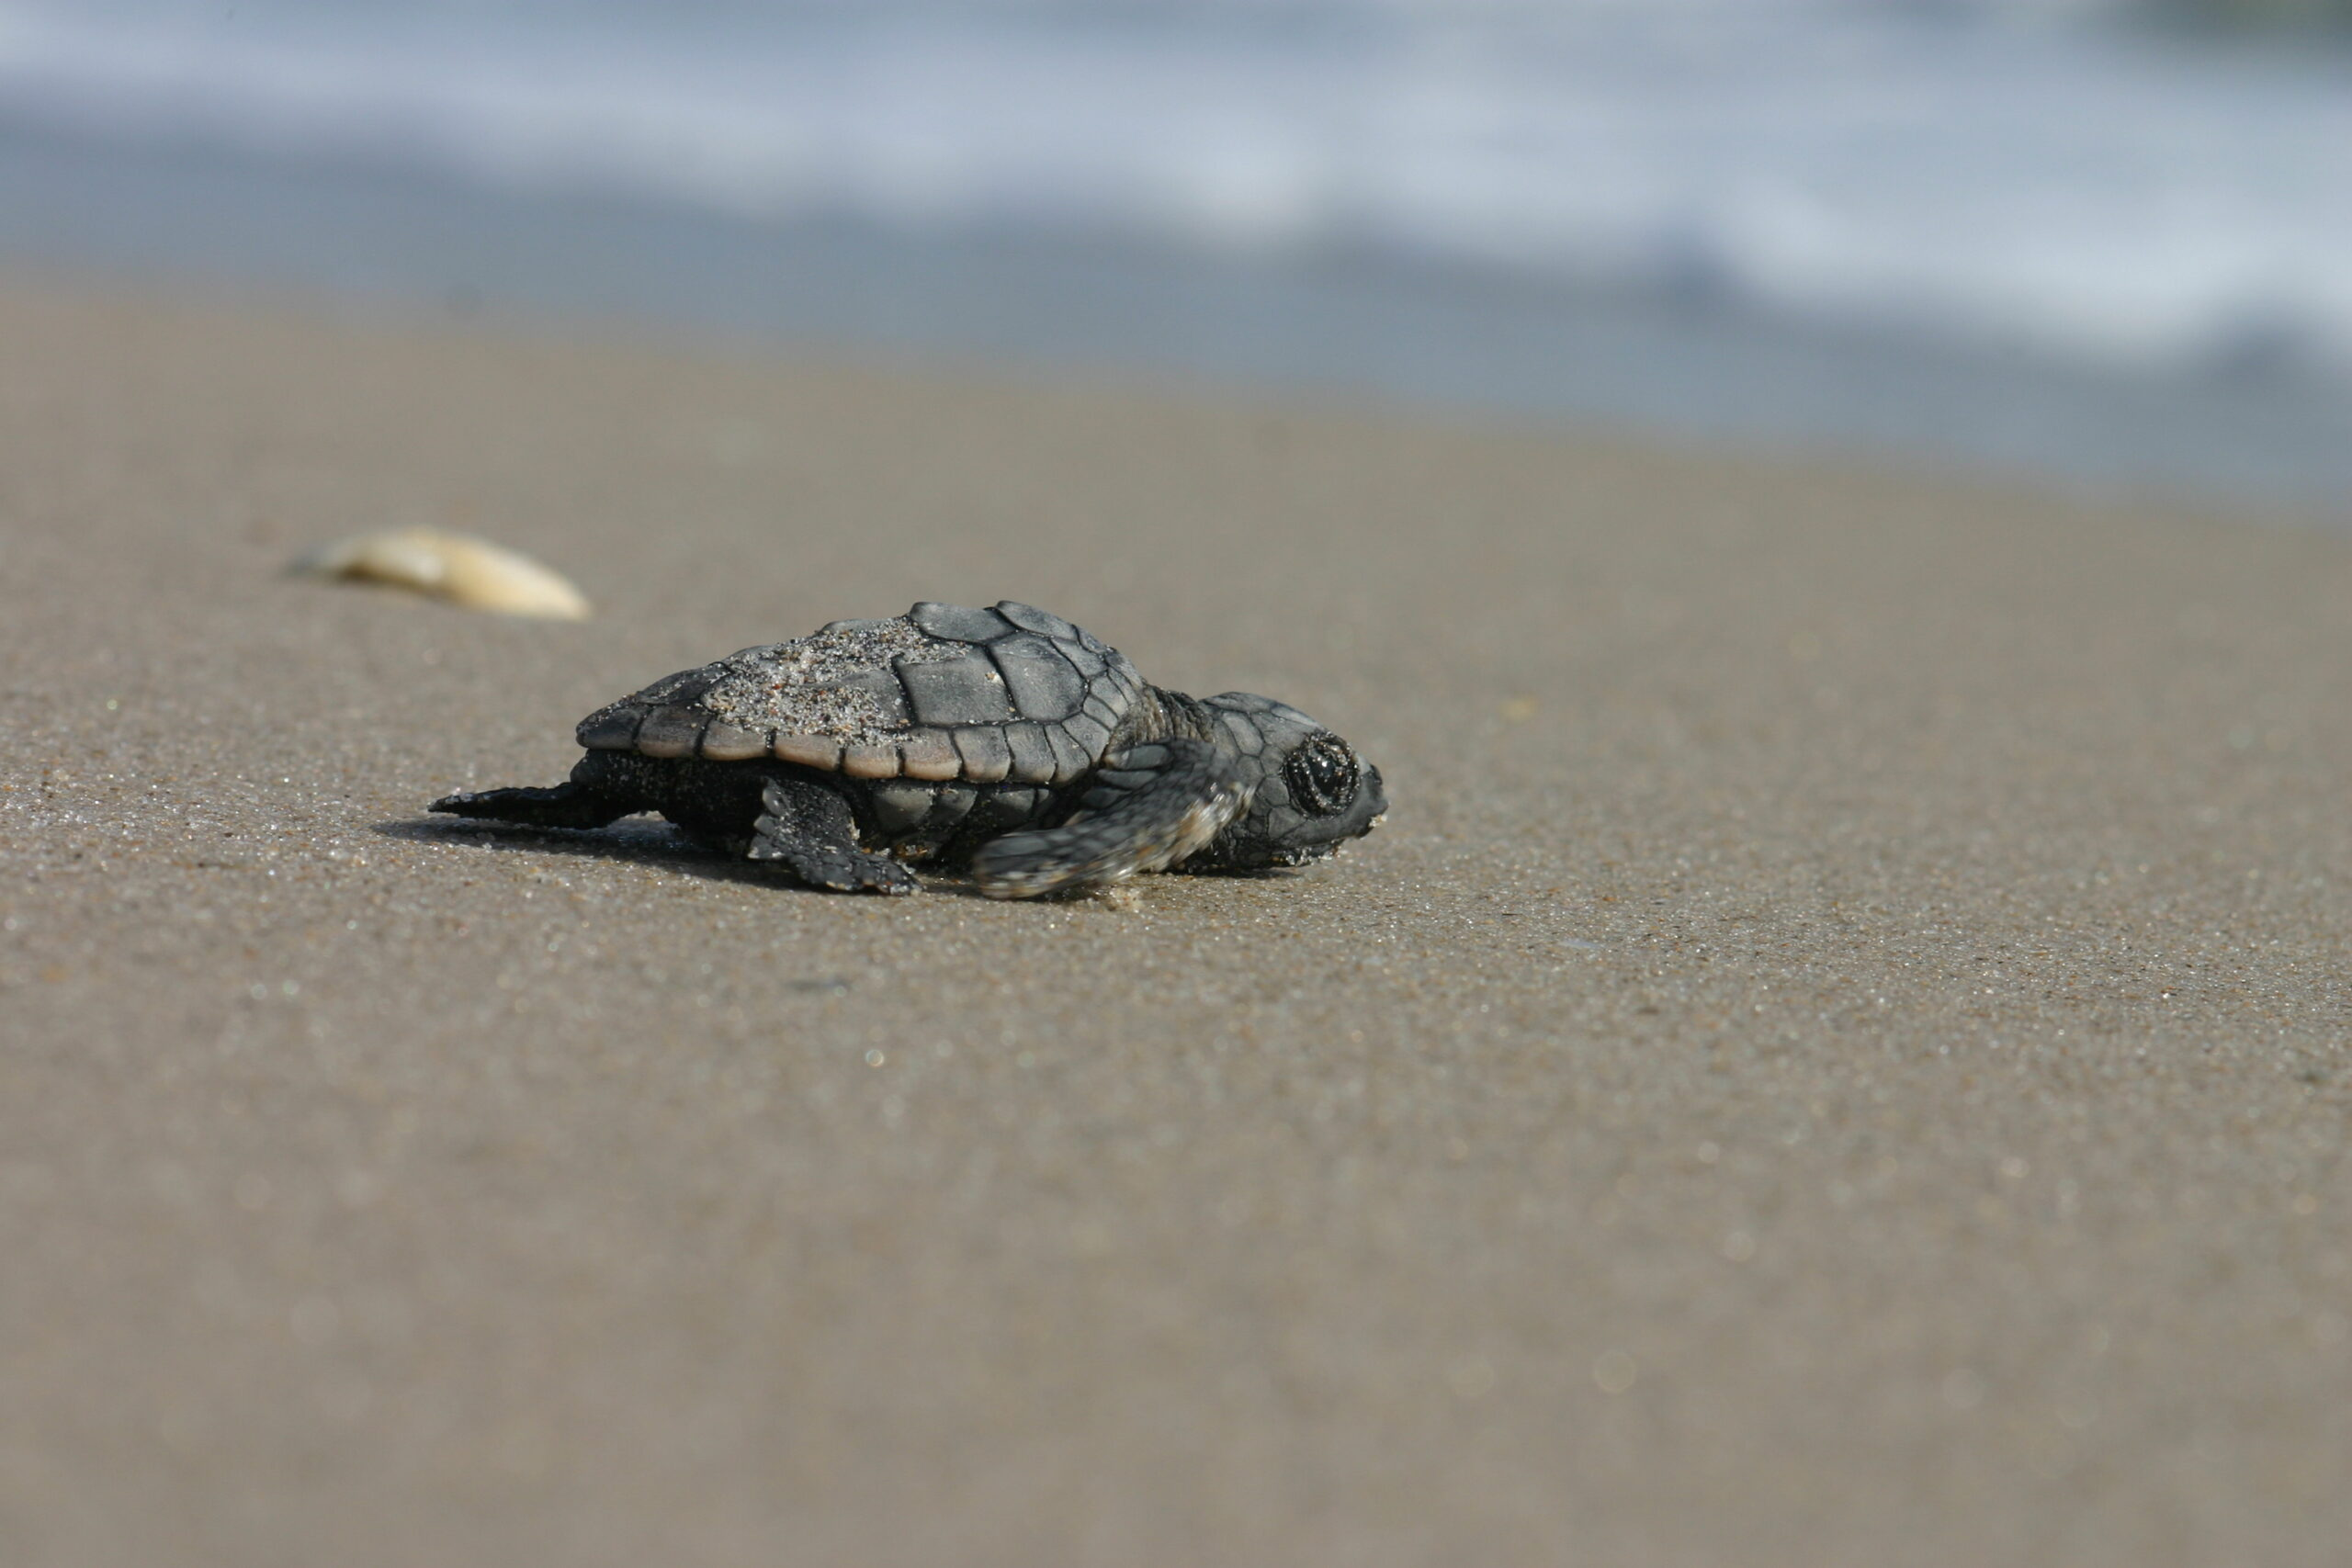 Sea Turtle Nesting Projects Awarded Emergency Funds to Ease COVID-19 Impact